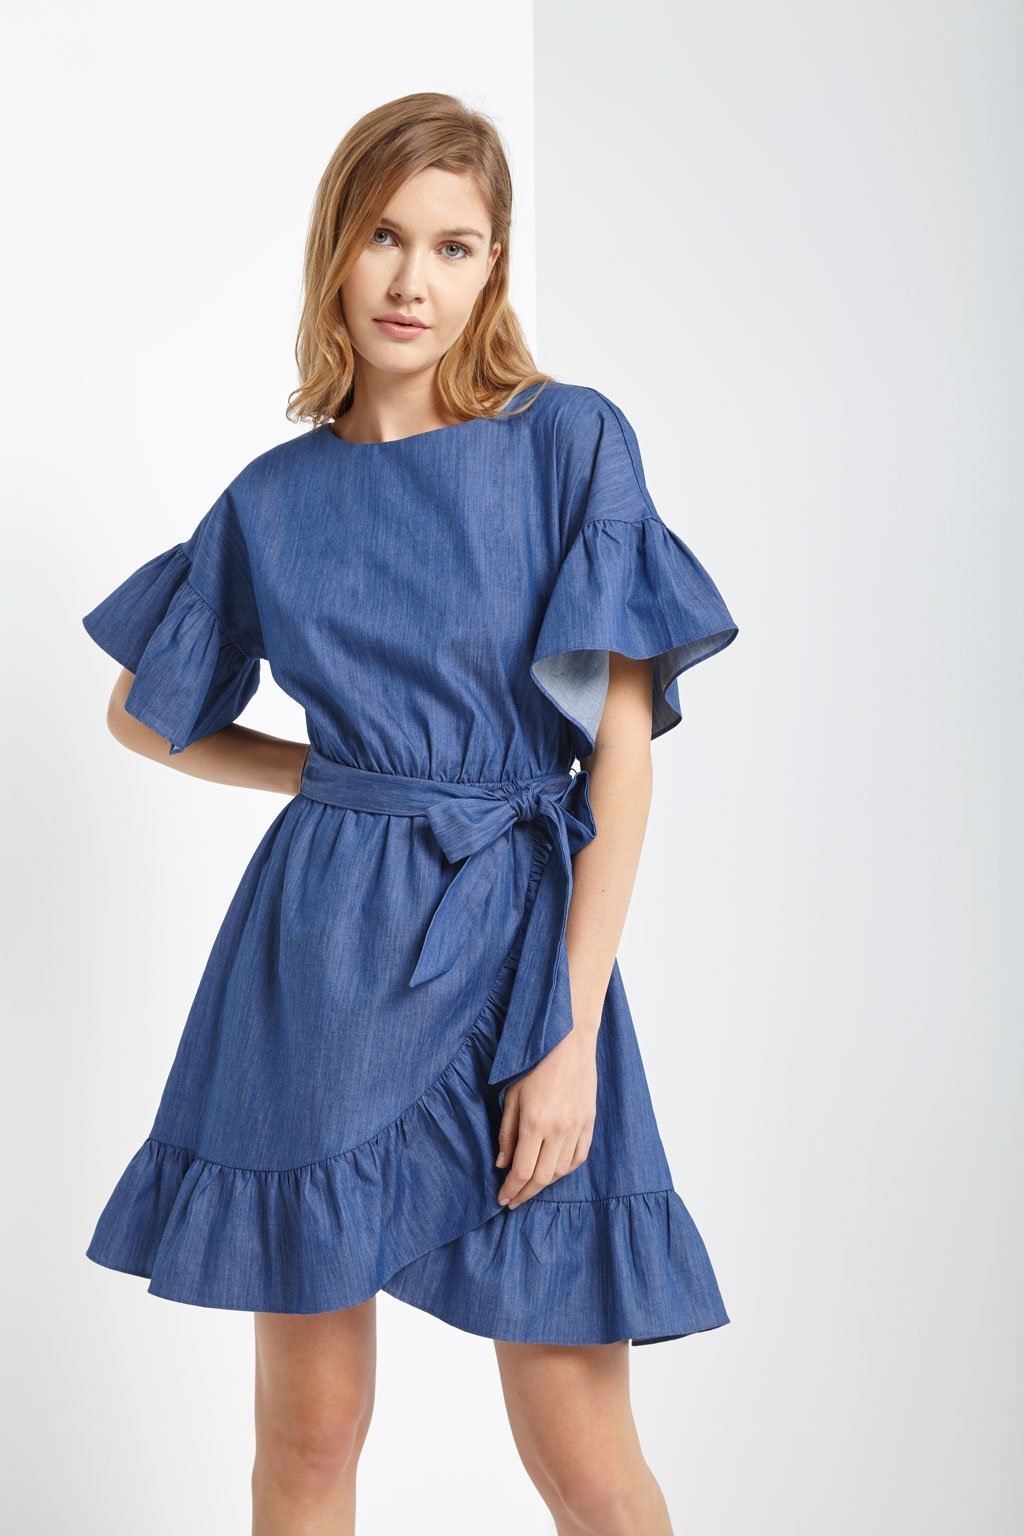 Poshsquare Dress Bridge Chambray Ruffle Dress